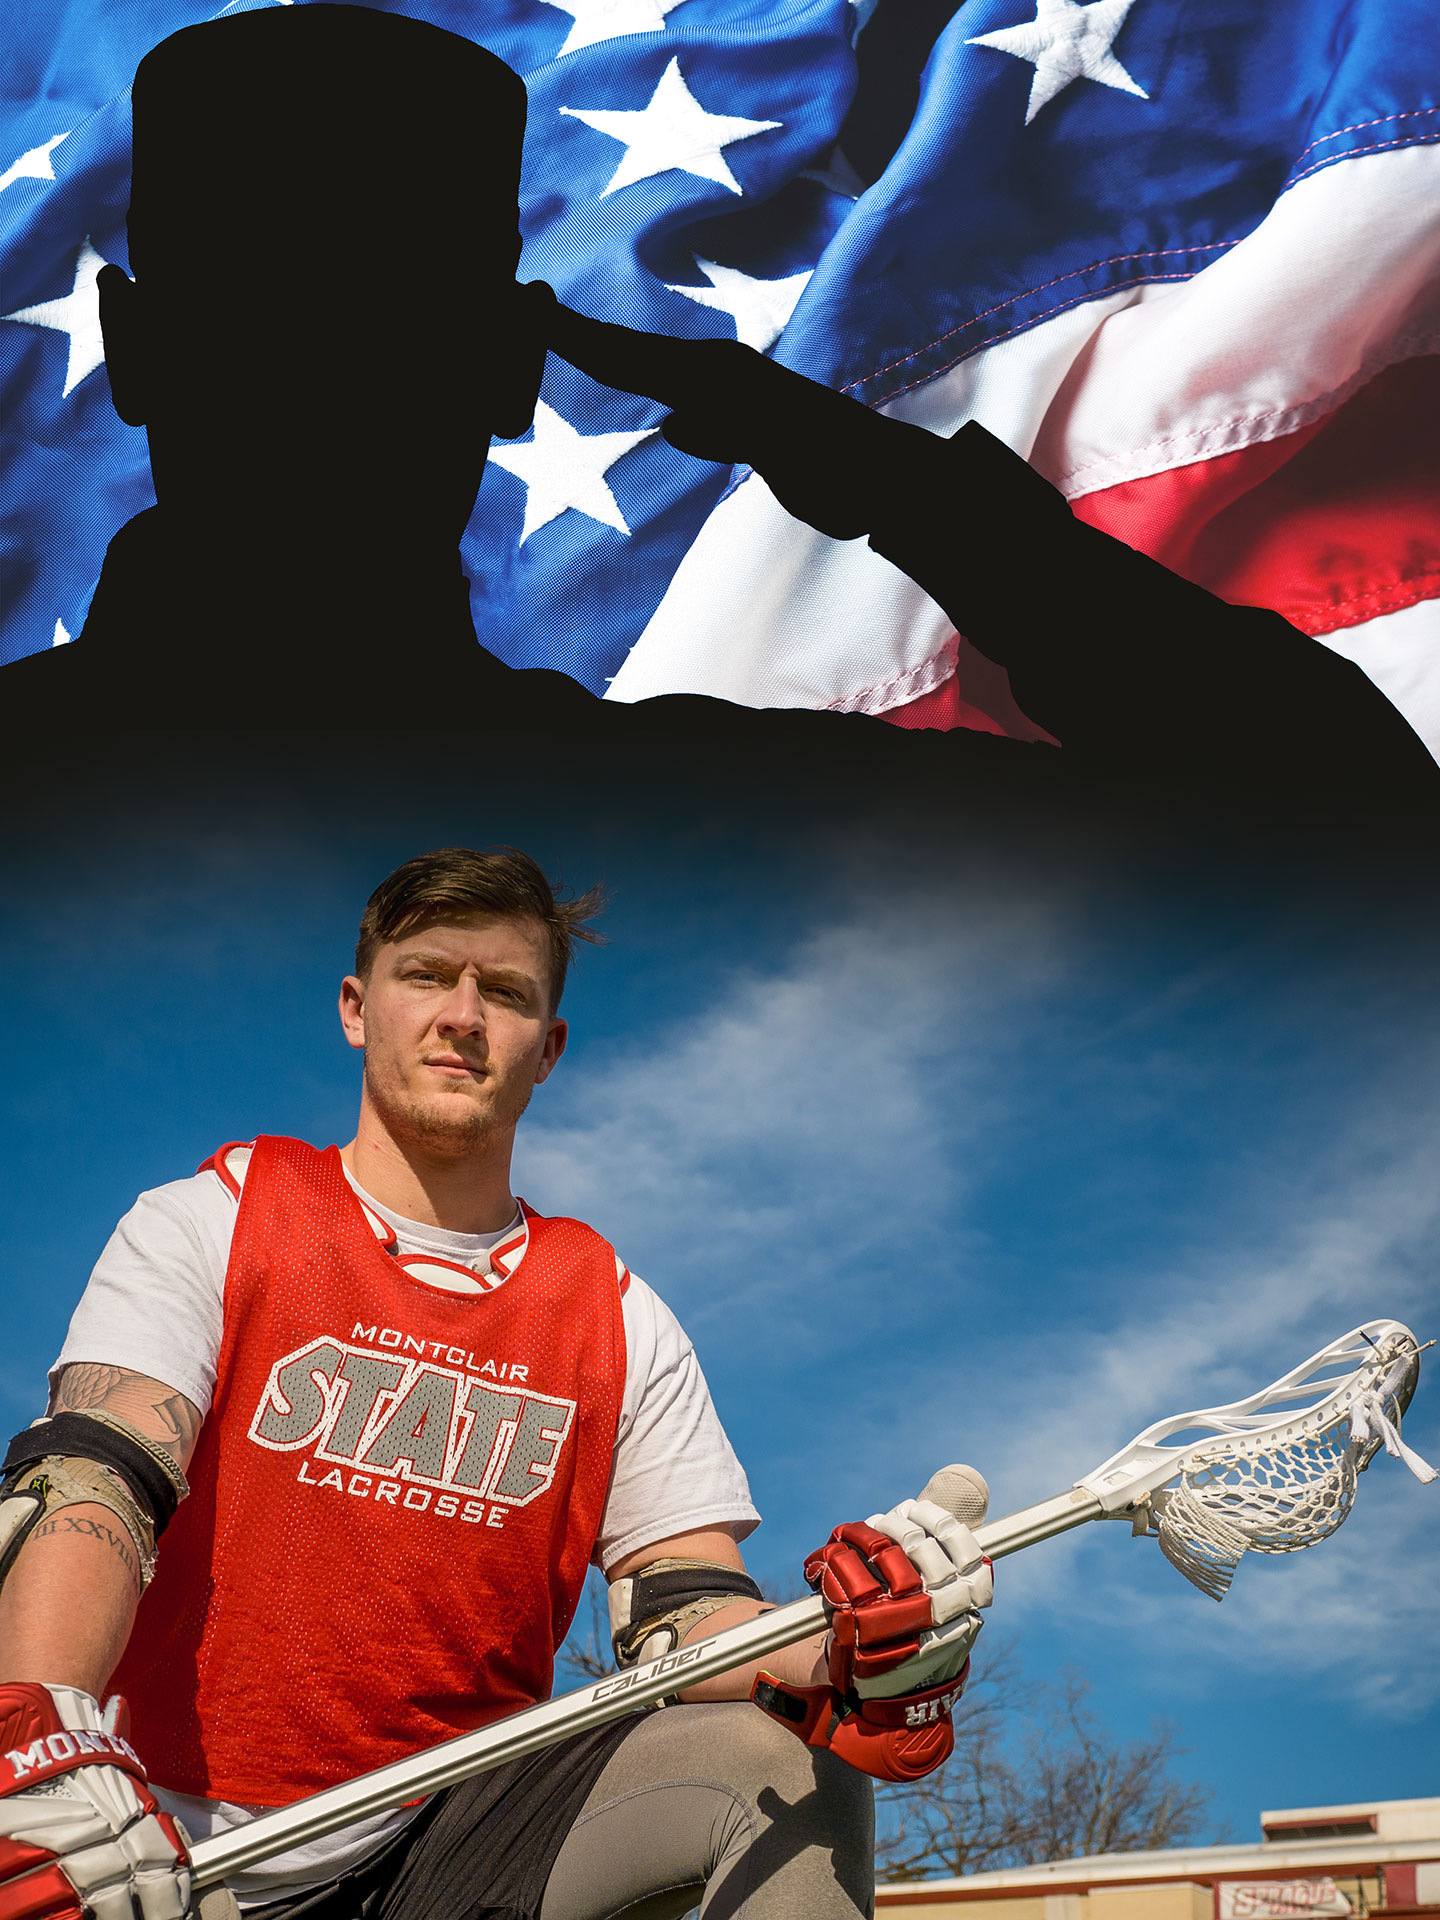 Max Frankovitz clad in lacrosse gear with background image of silhouette of soldier and American flag.